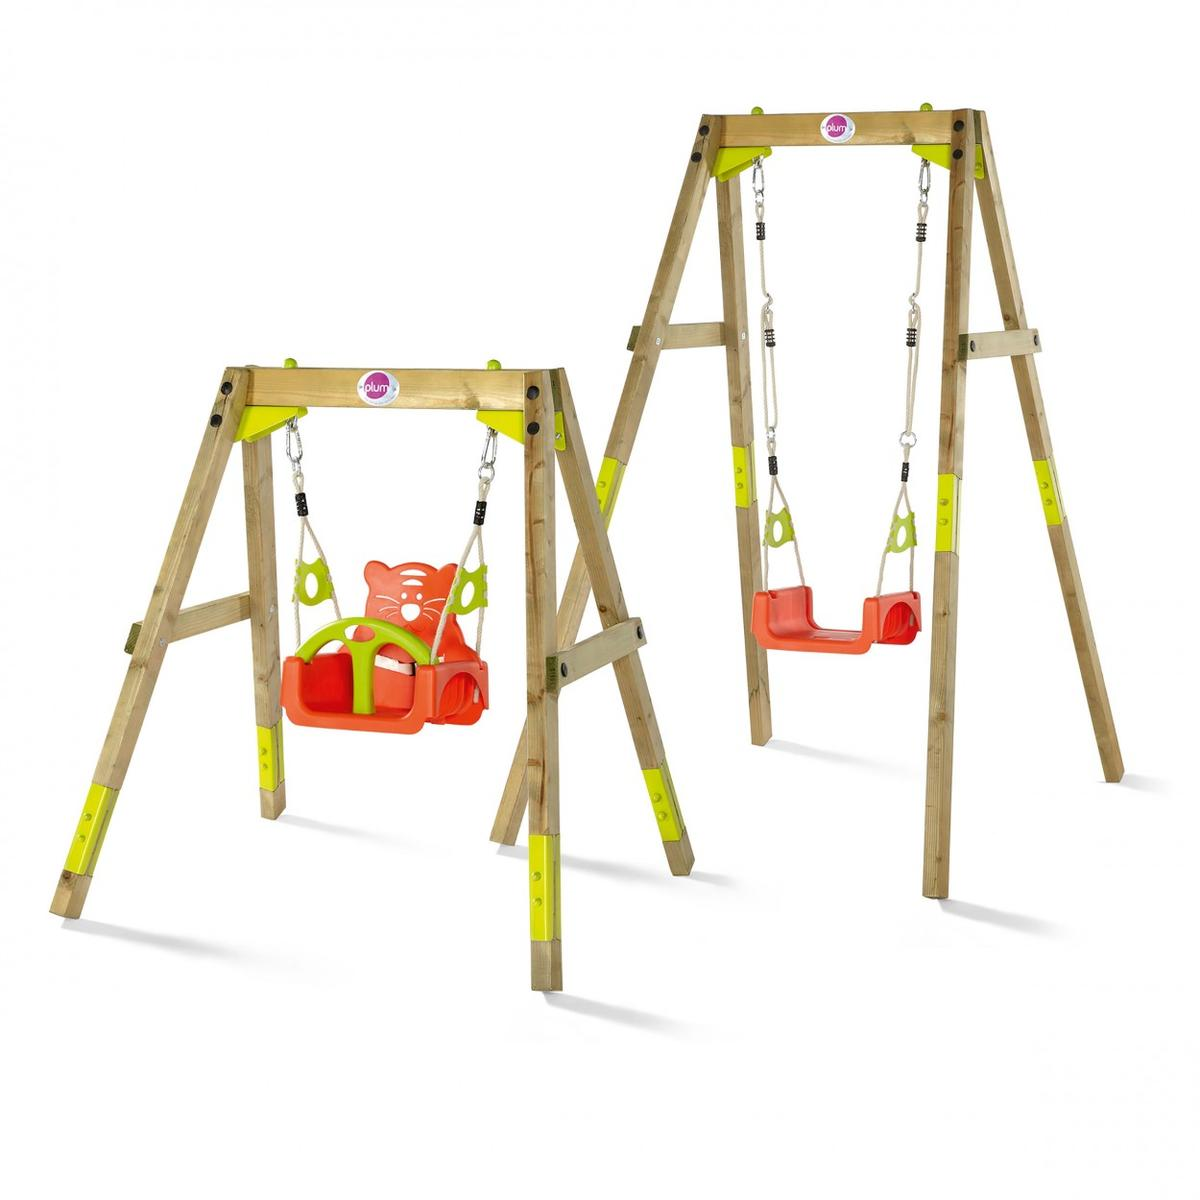 Plum Wooden Growing Swing Set Adjustable Wooden Swing